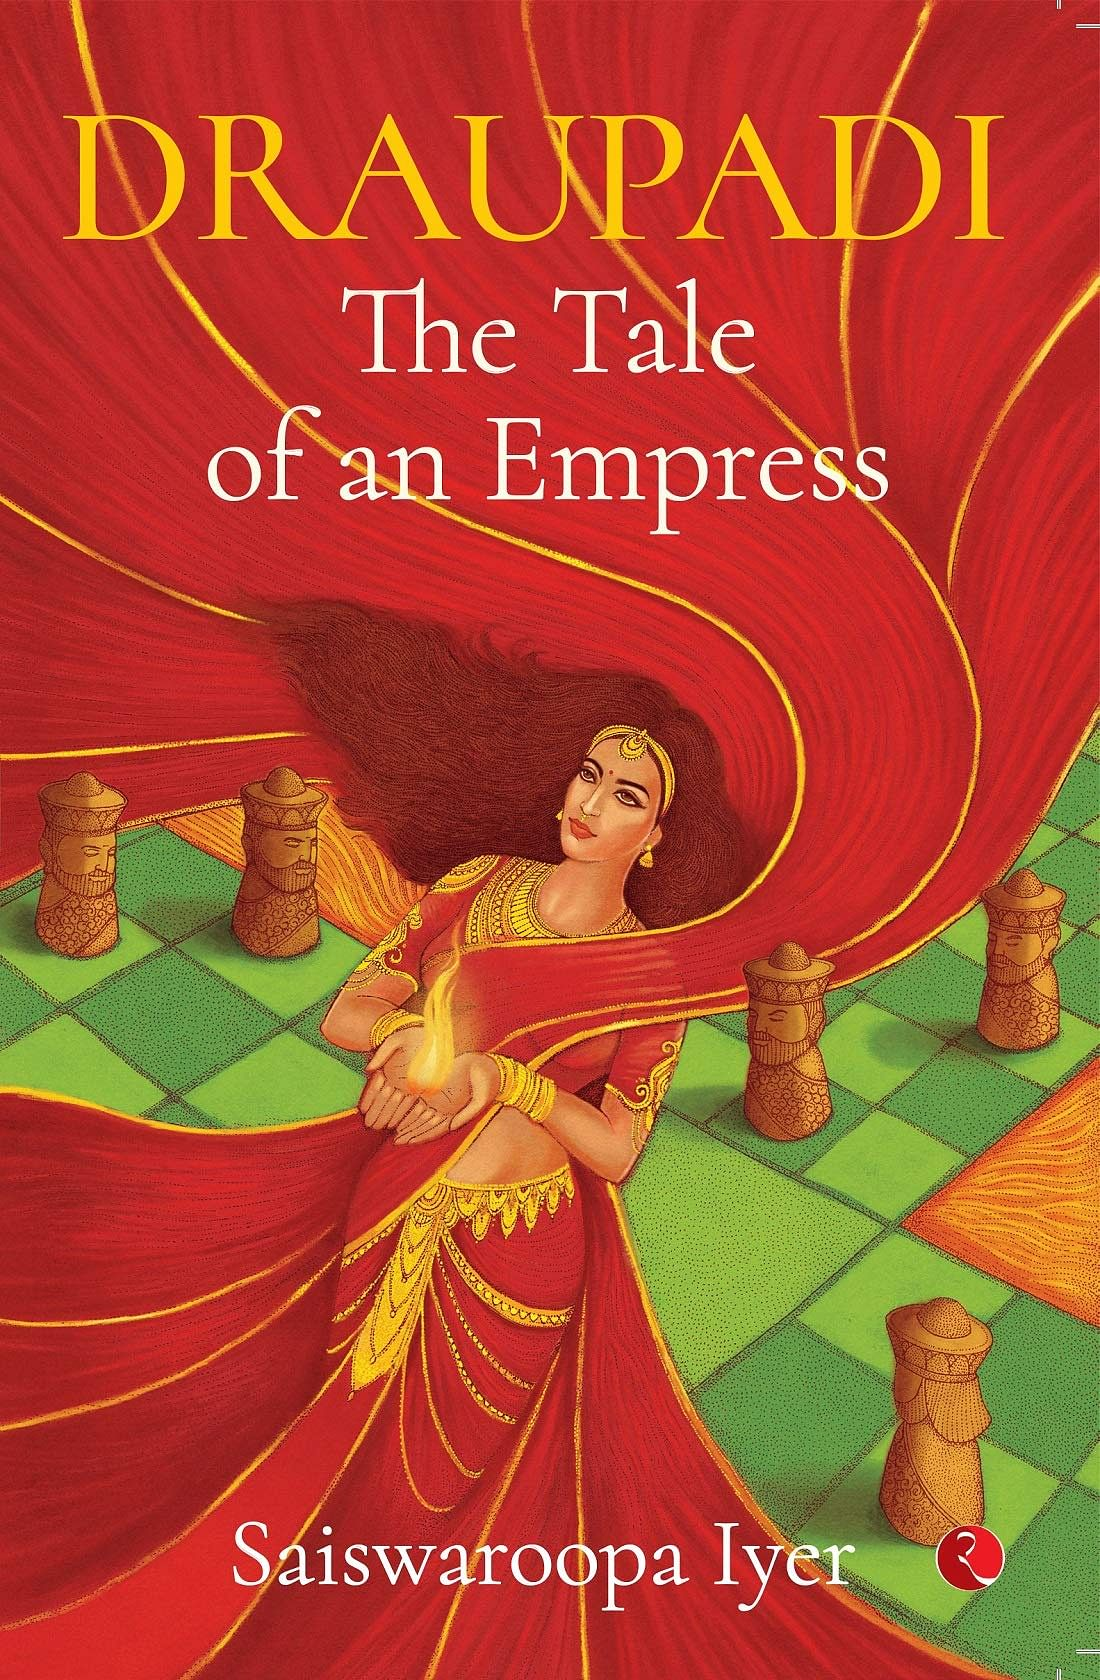 Draupadi: The Tale of an Empress by Saiswaroopa Iyer – Review